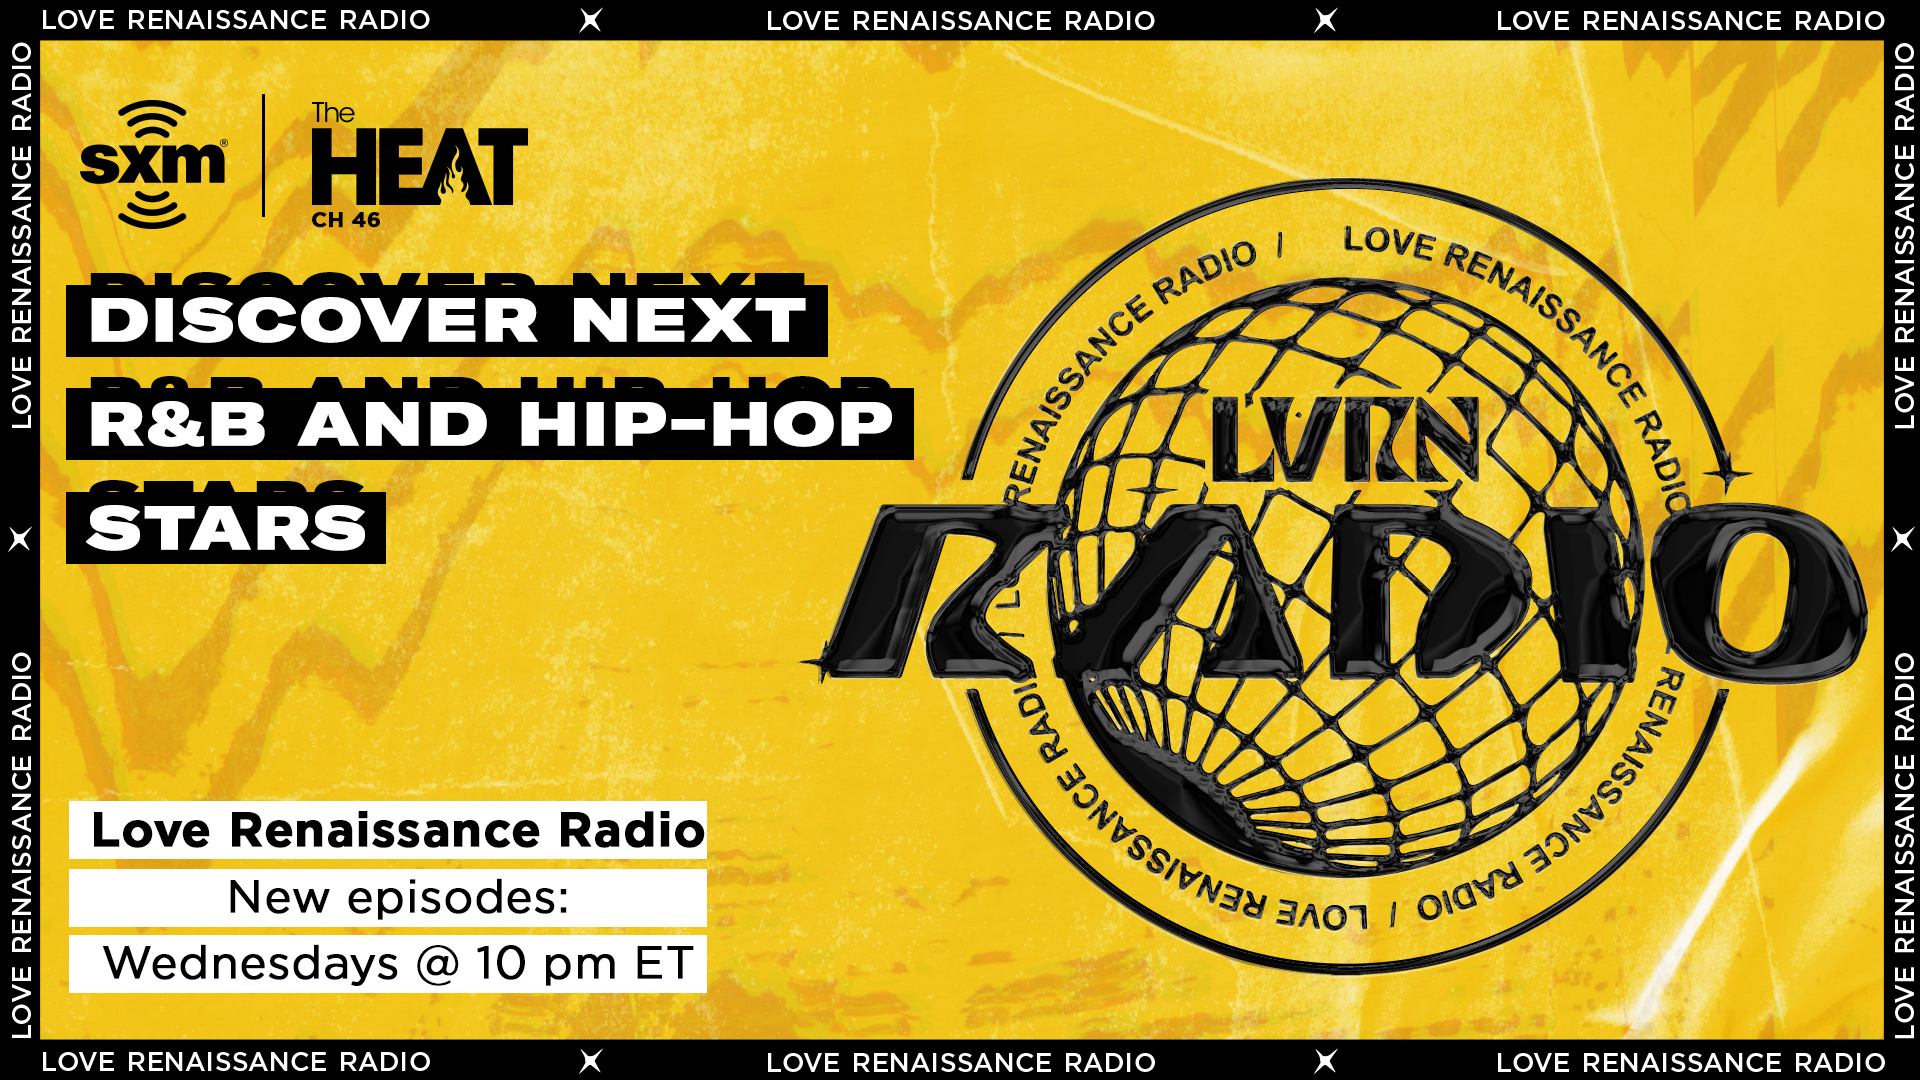 Discover the next R&B and Hip-Hop stars on Love Renaissance Radio